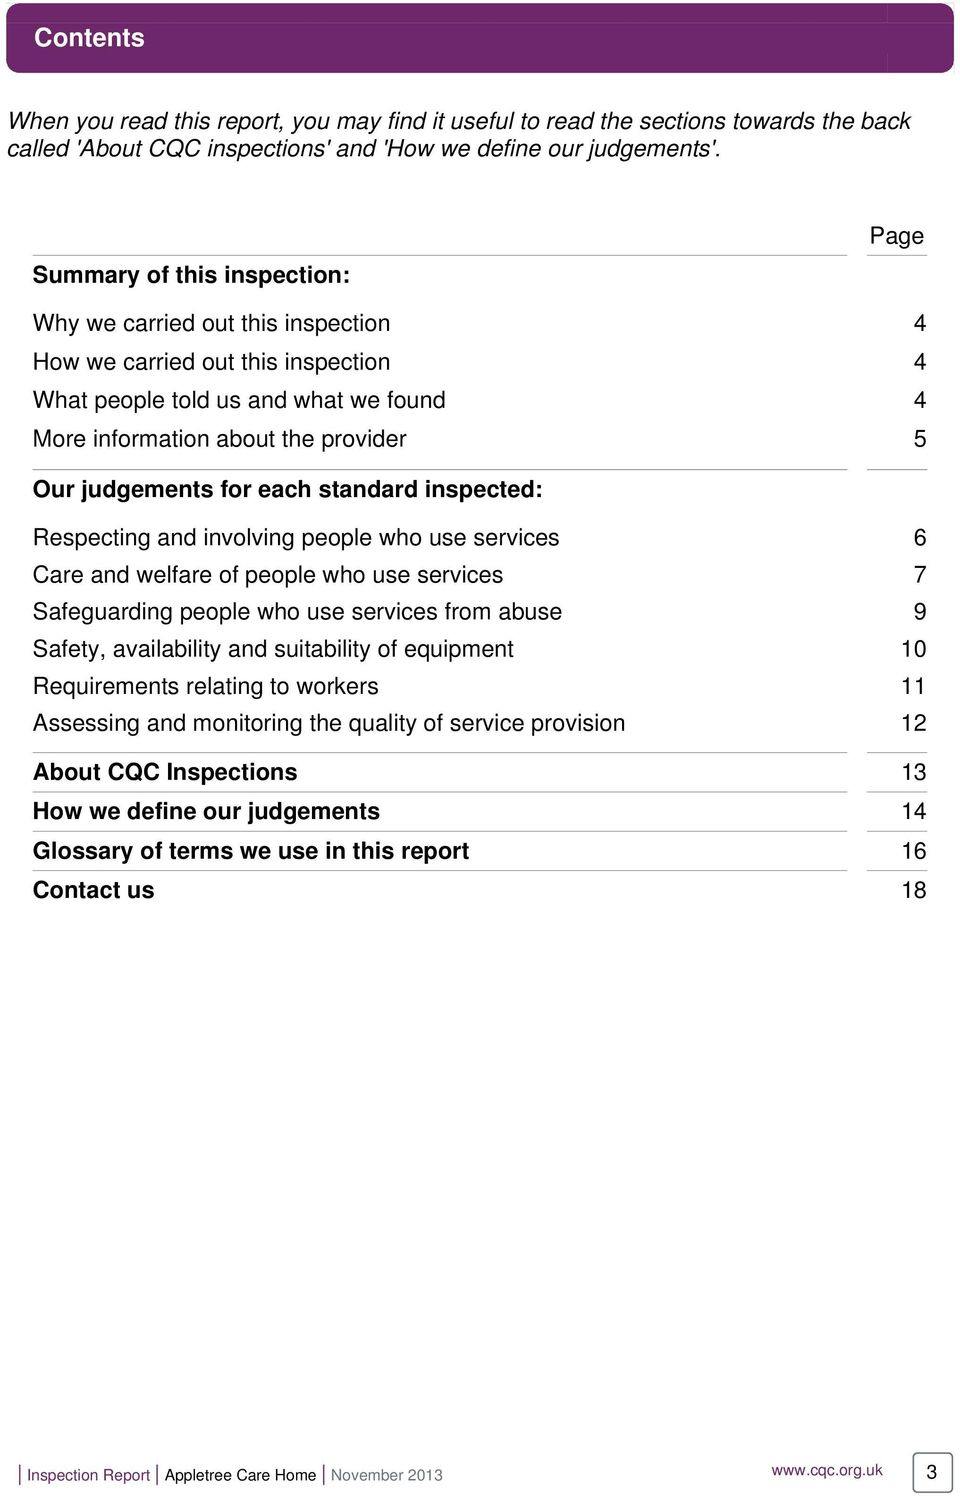 for each standard inspected: Respecting and involving people who use services 6 Care and welfare of people who use services 7 Safeguarding people who use services from abuse 9 Safety, availability